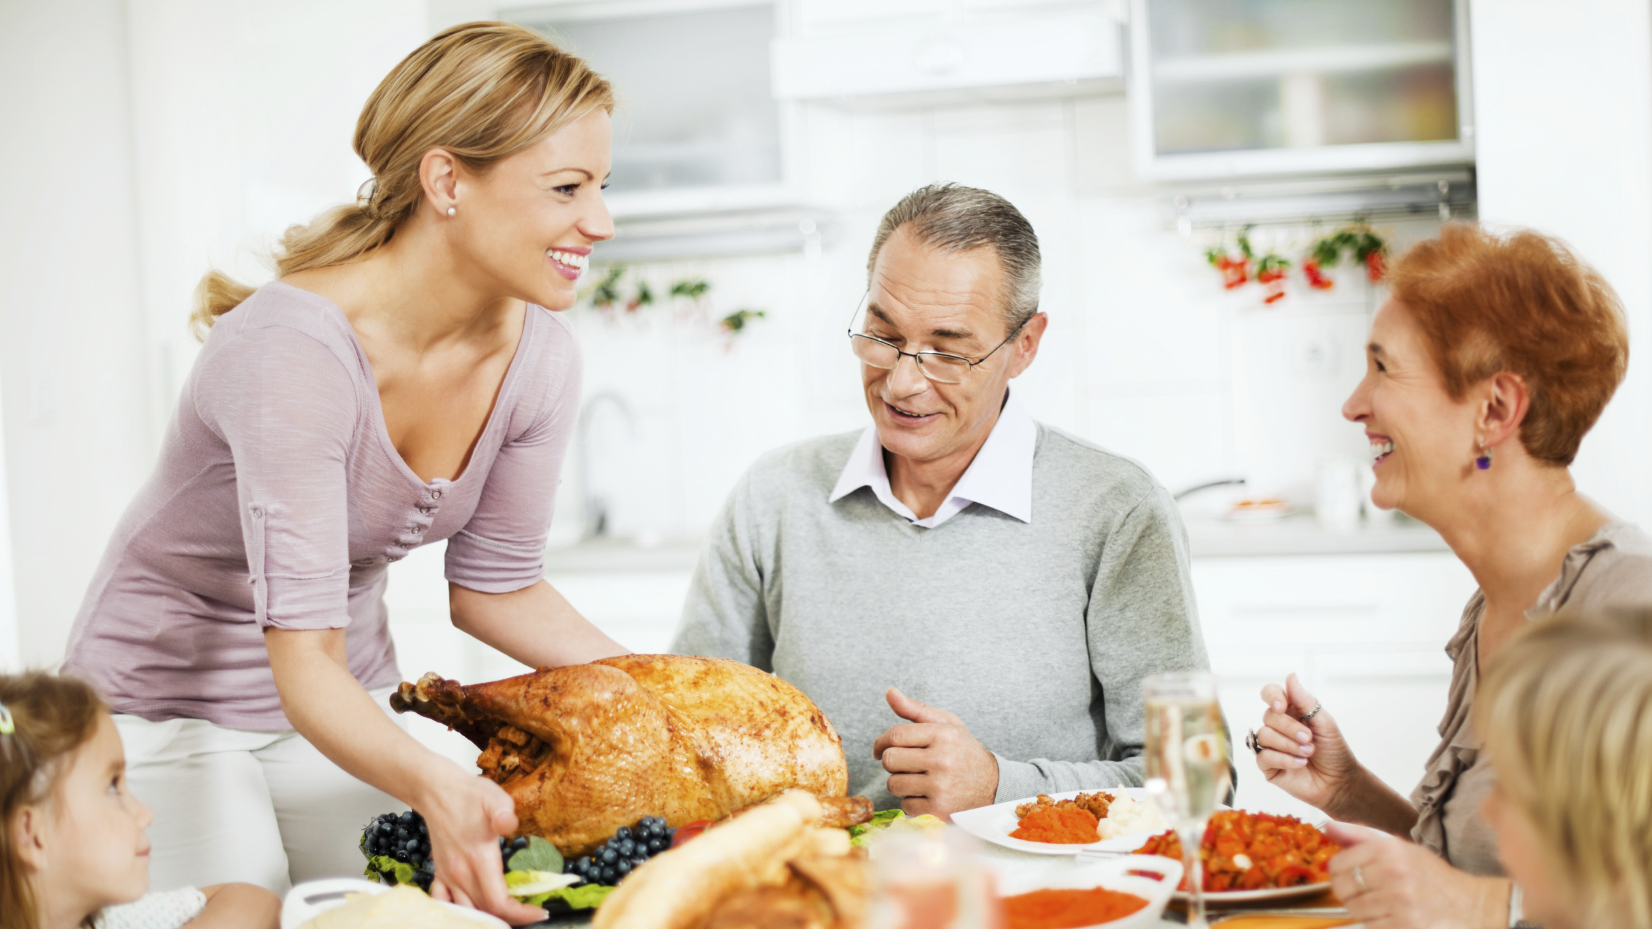 The Good Listener: For Thanksgiving, Is There Music Everyone Can Agree On?